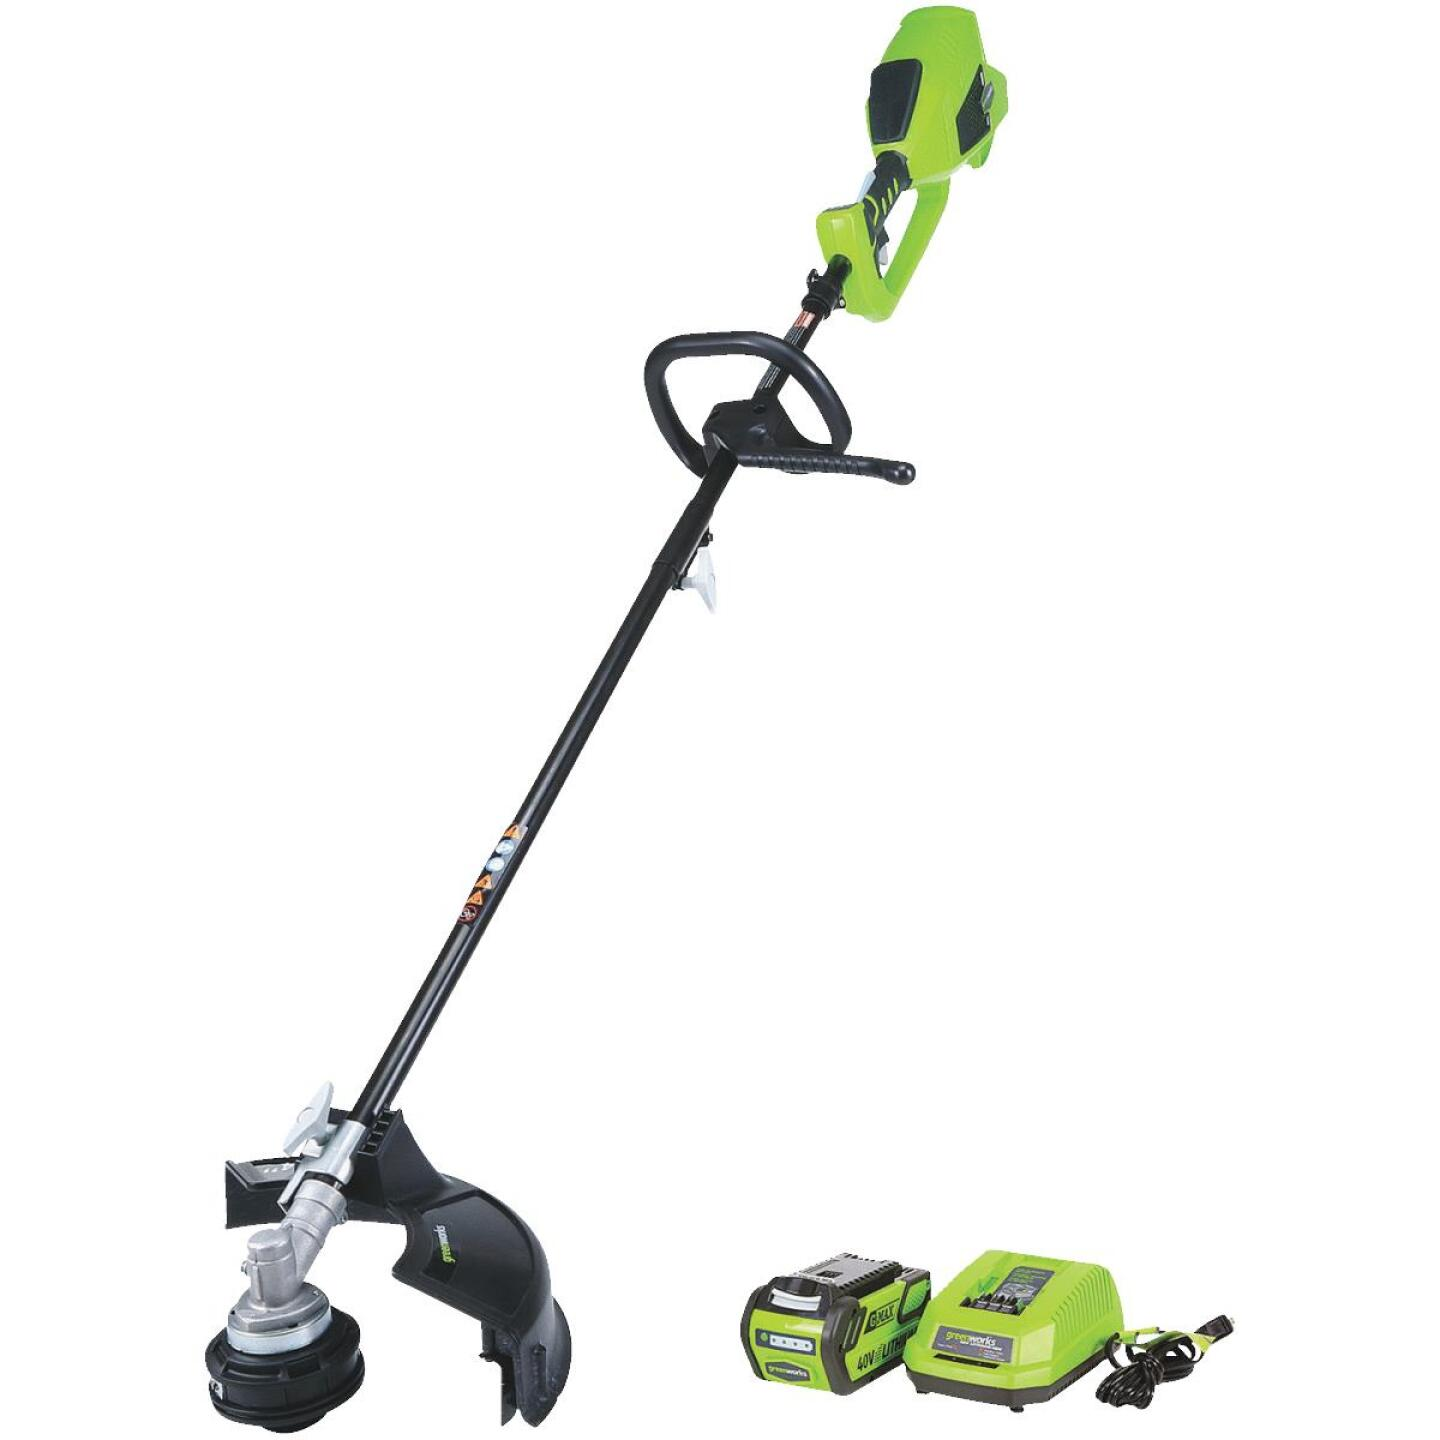 Greenworks G-Max 40V 14 In. Lithium Ion Straight Cordless String Trimmer Image 1